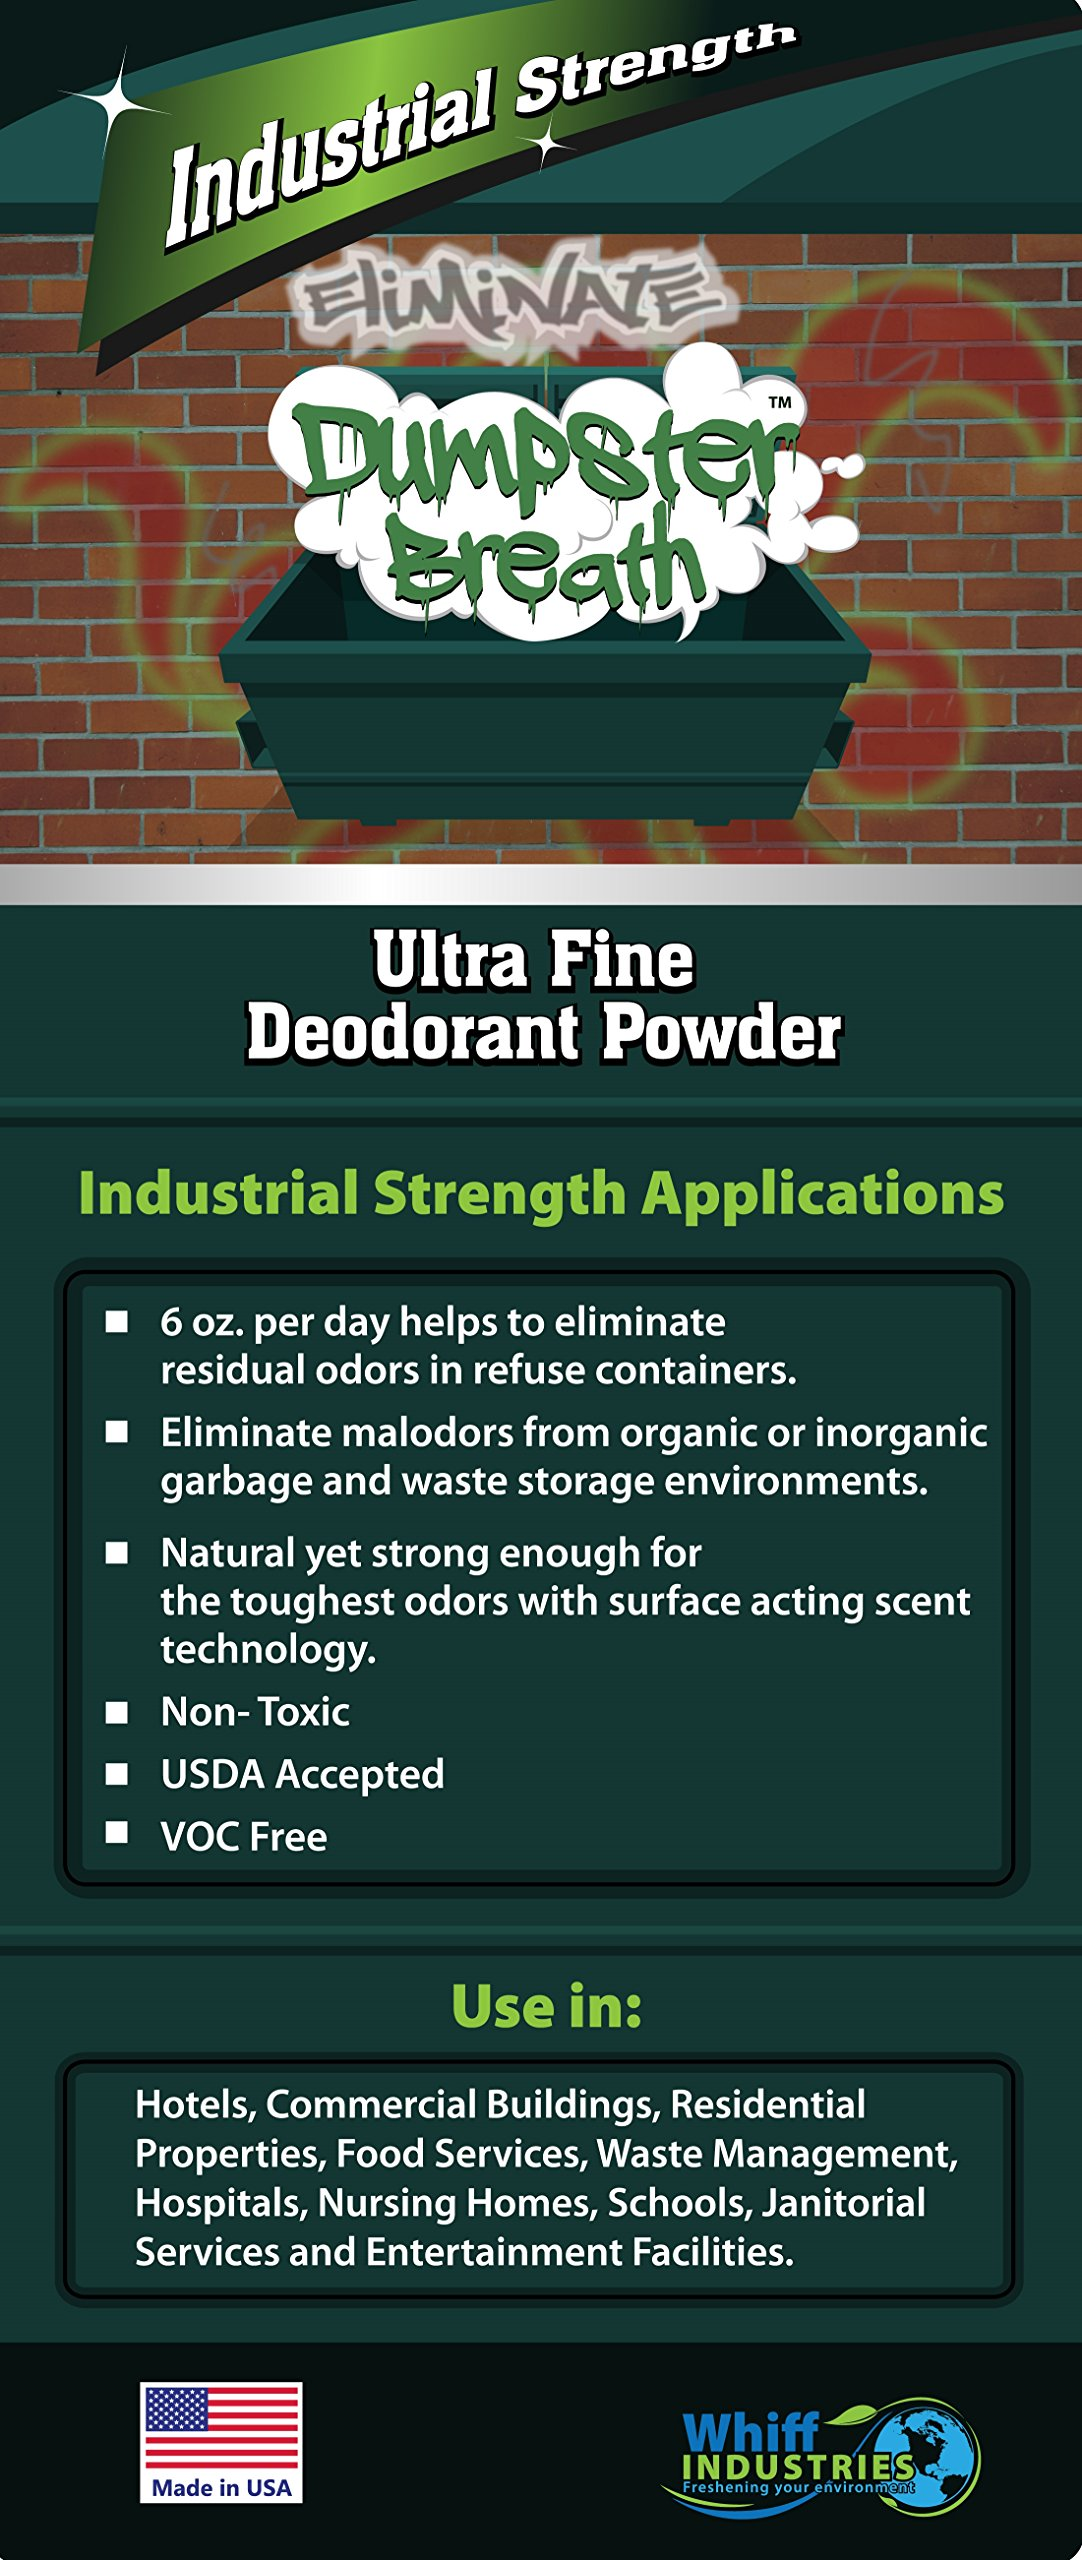 Dumpster Breath® Heavy Duty Commercial Odor Control Ultra Fine Deodorant Powder For All Solid Waste Management Environments. Eliminates Odors in Dumpsters, Trash Cans and Anywhere Residual Odors Can Occur - 5 Gallon Bucket (45lbs.)